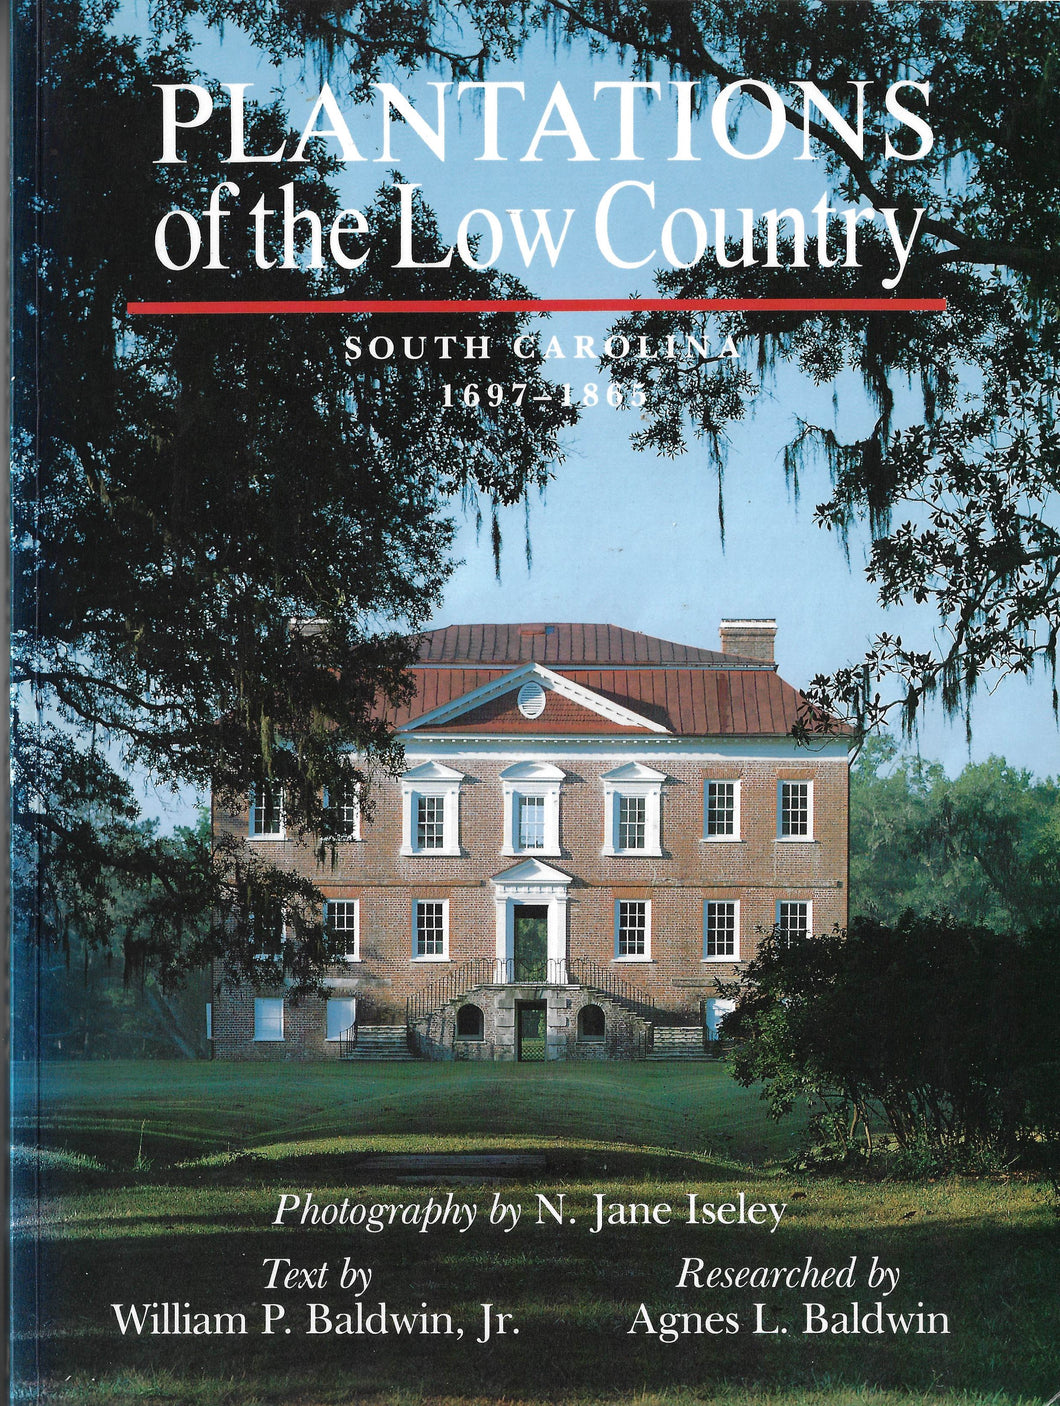 Plantations of the Low Country-South Carolina 1697-1865 ~William P. Baldwin, researched by Agnes L. Baldwin.  Photography by N. Jane Isley